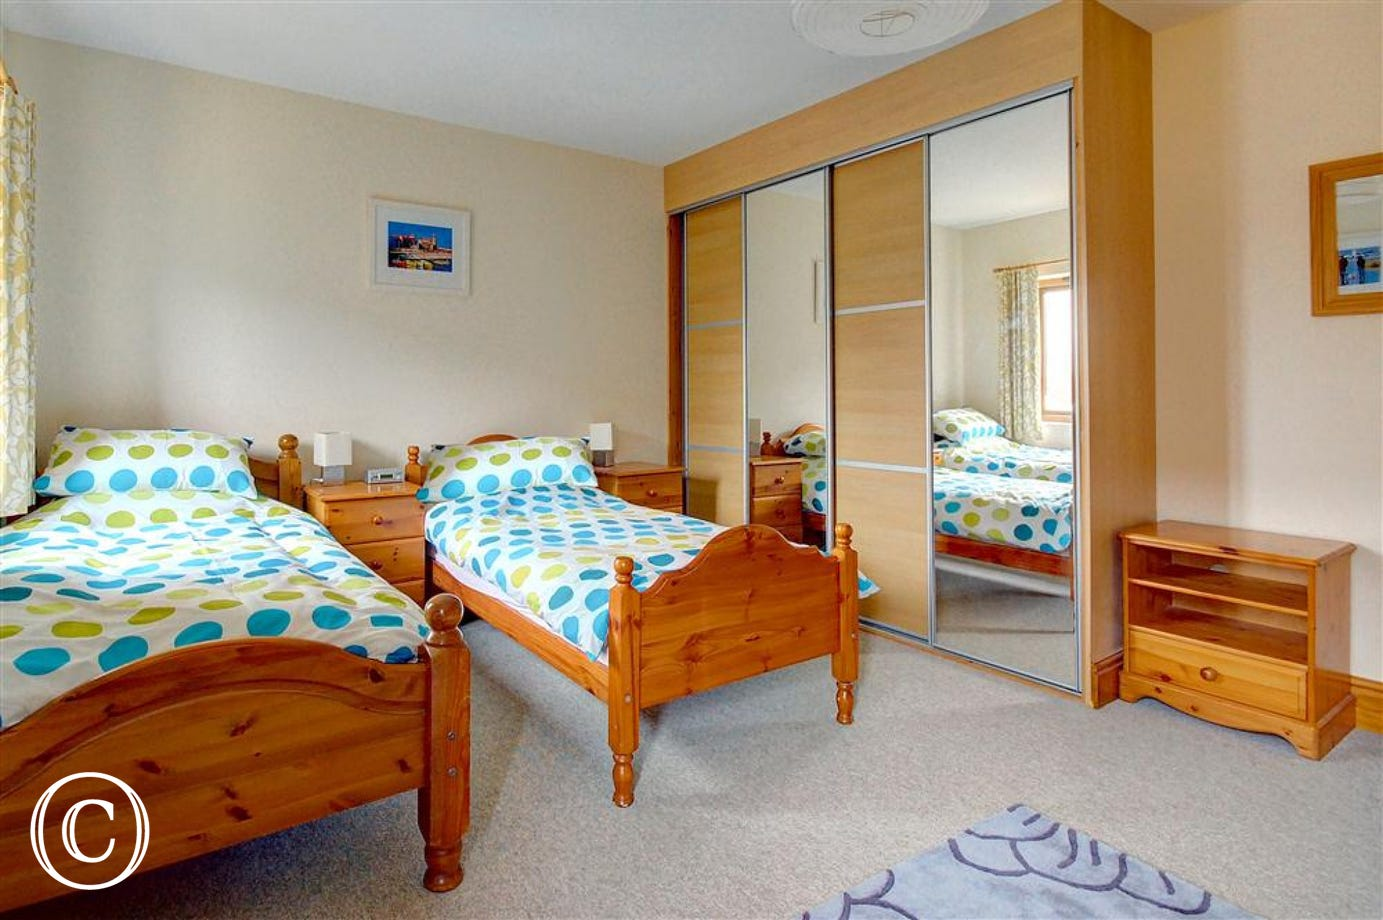 This twin bedded room with sliding wardrobe makes for easy unpacking when you get to the property.